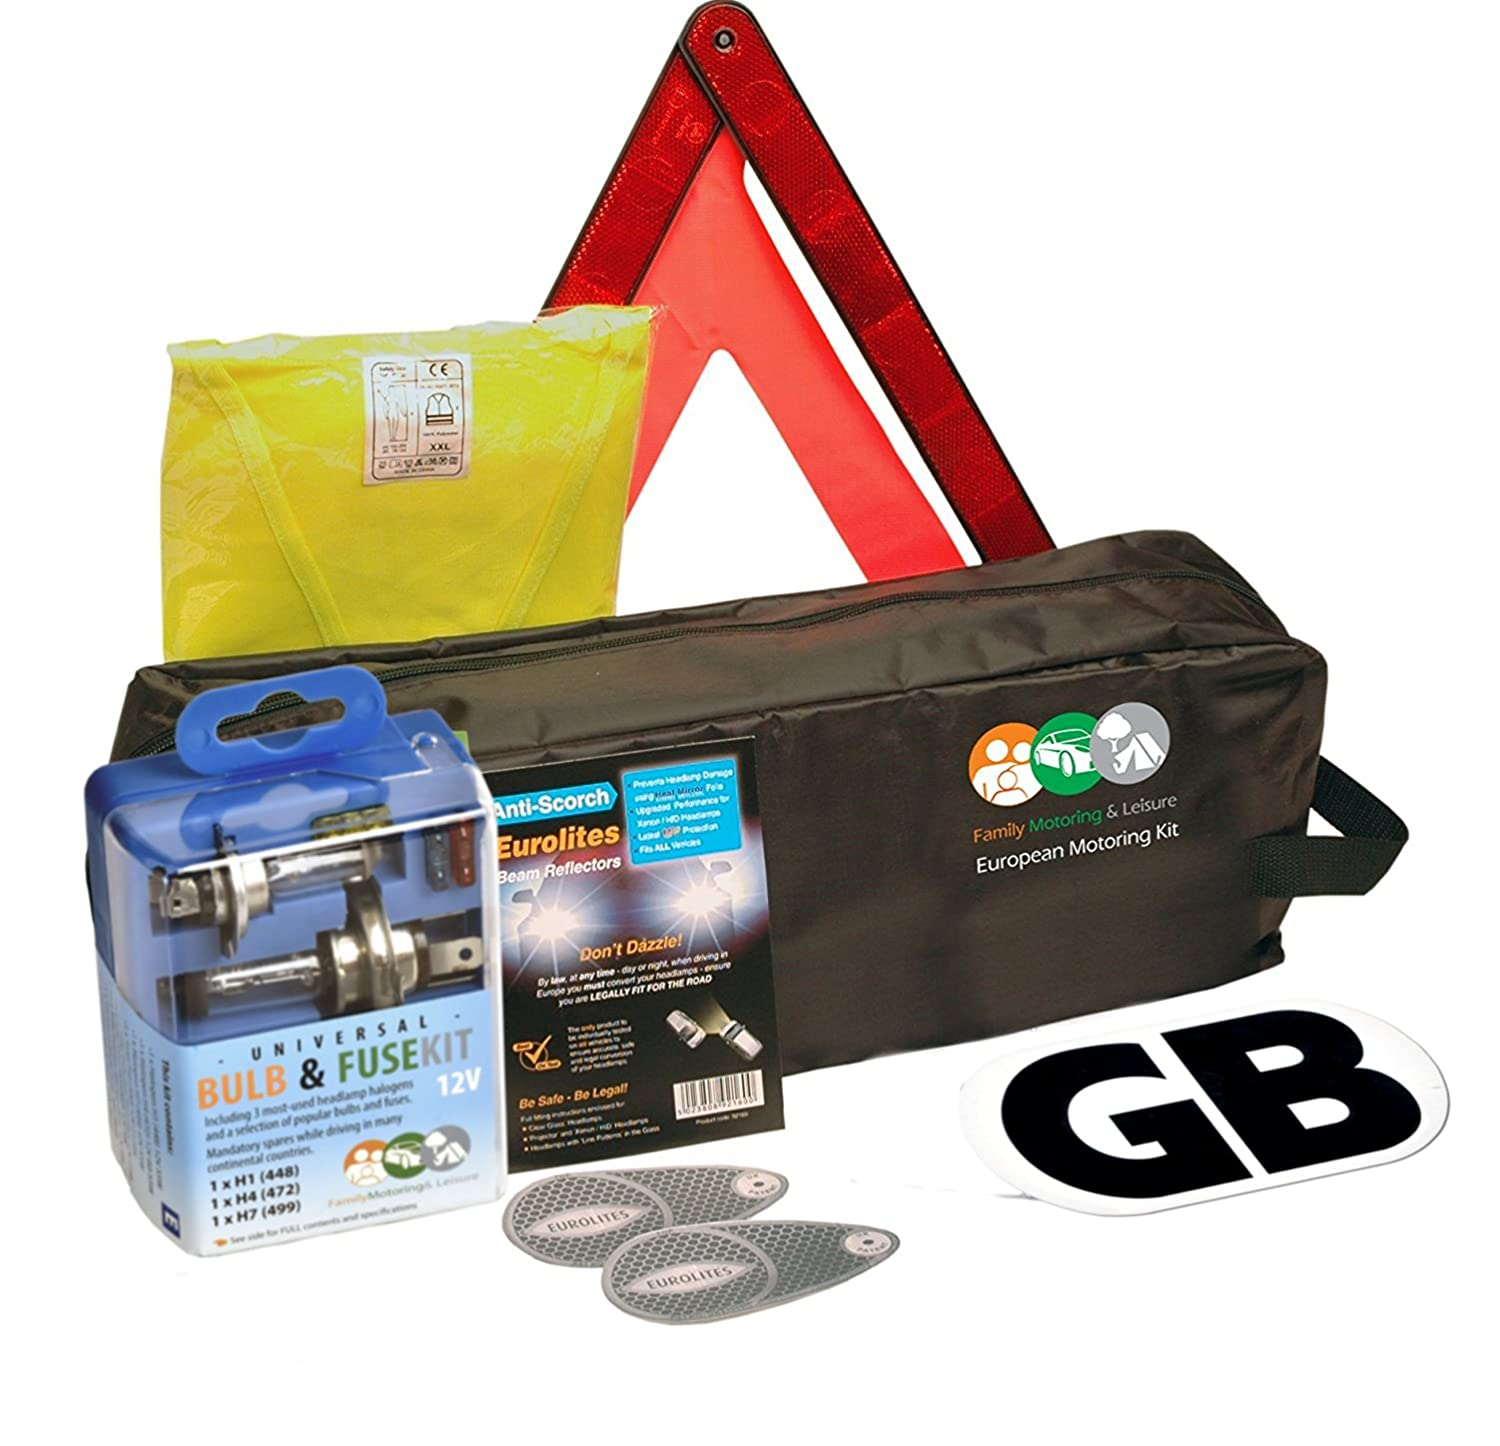 New Euro Travel Kit For All You Need For Travelling In Europe Family Motoring & Leisure